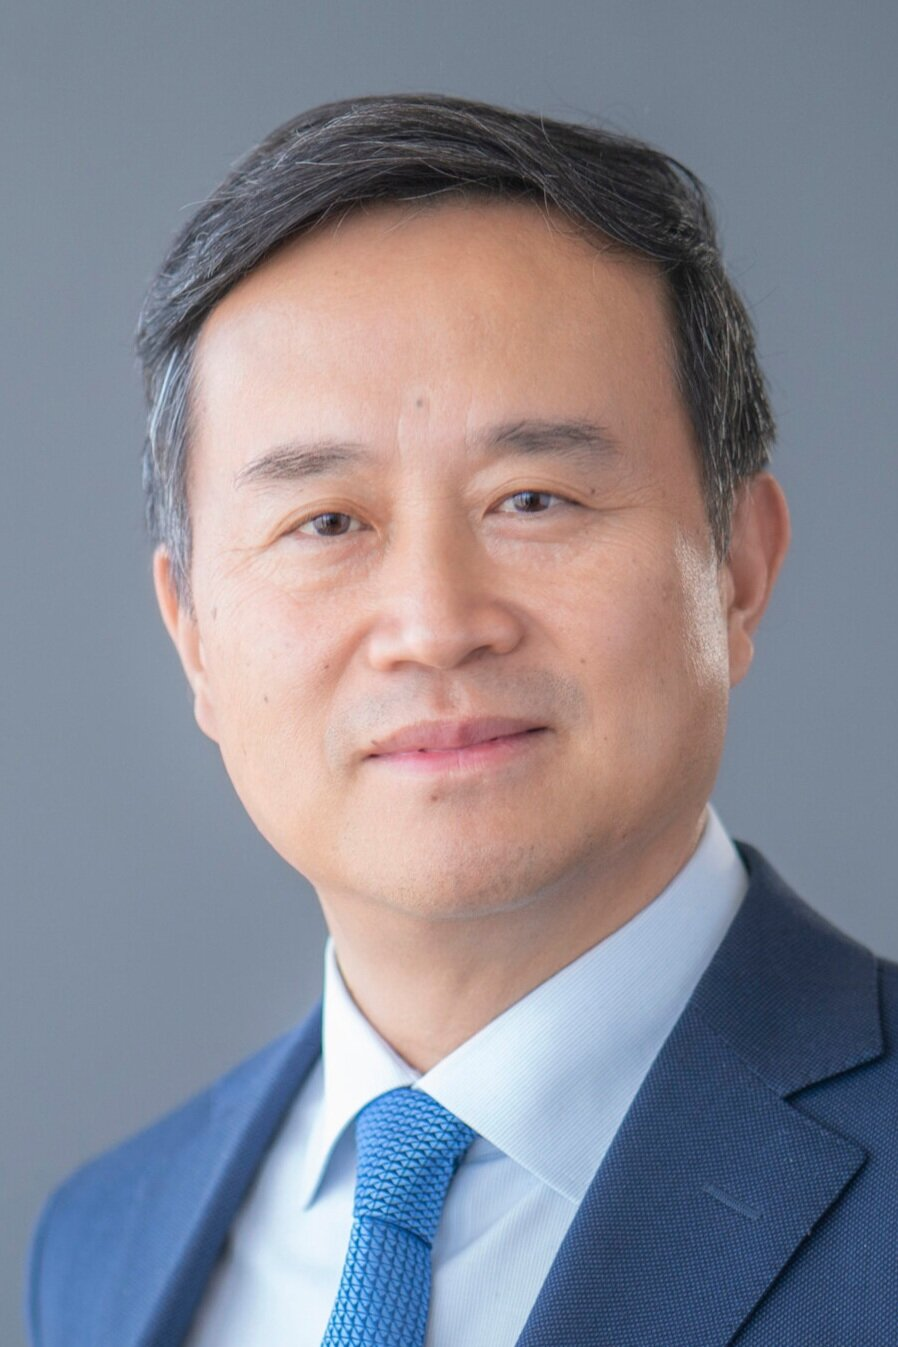 GUANG YANG   BrightSphere Investment Group  Executive Chairman, President & Chief Executive Officer